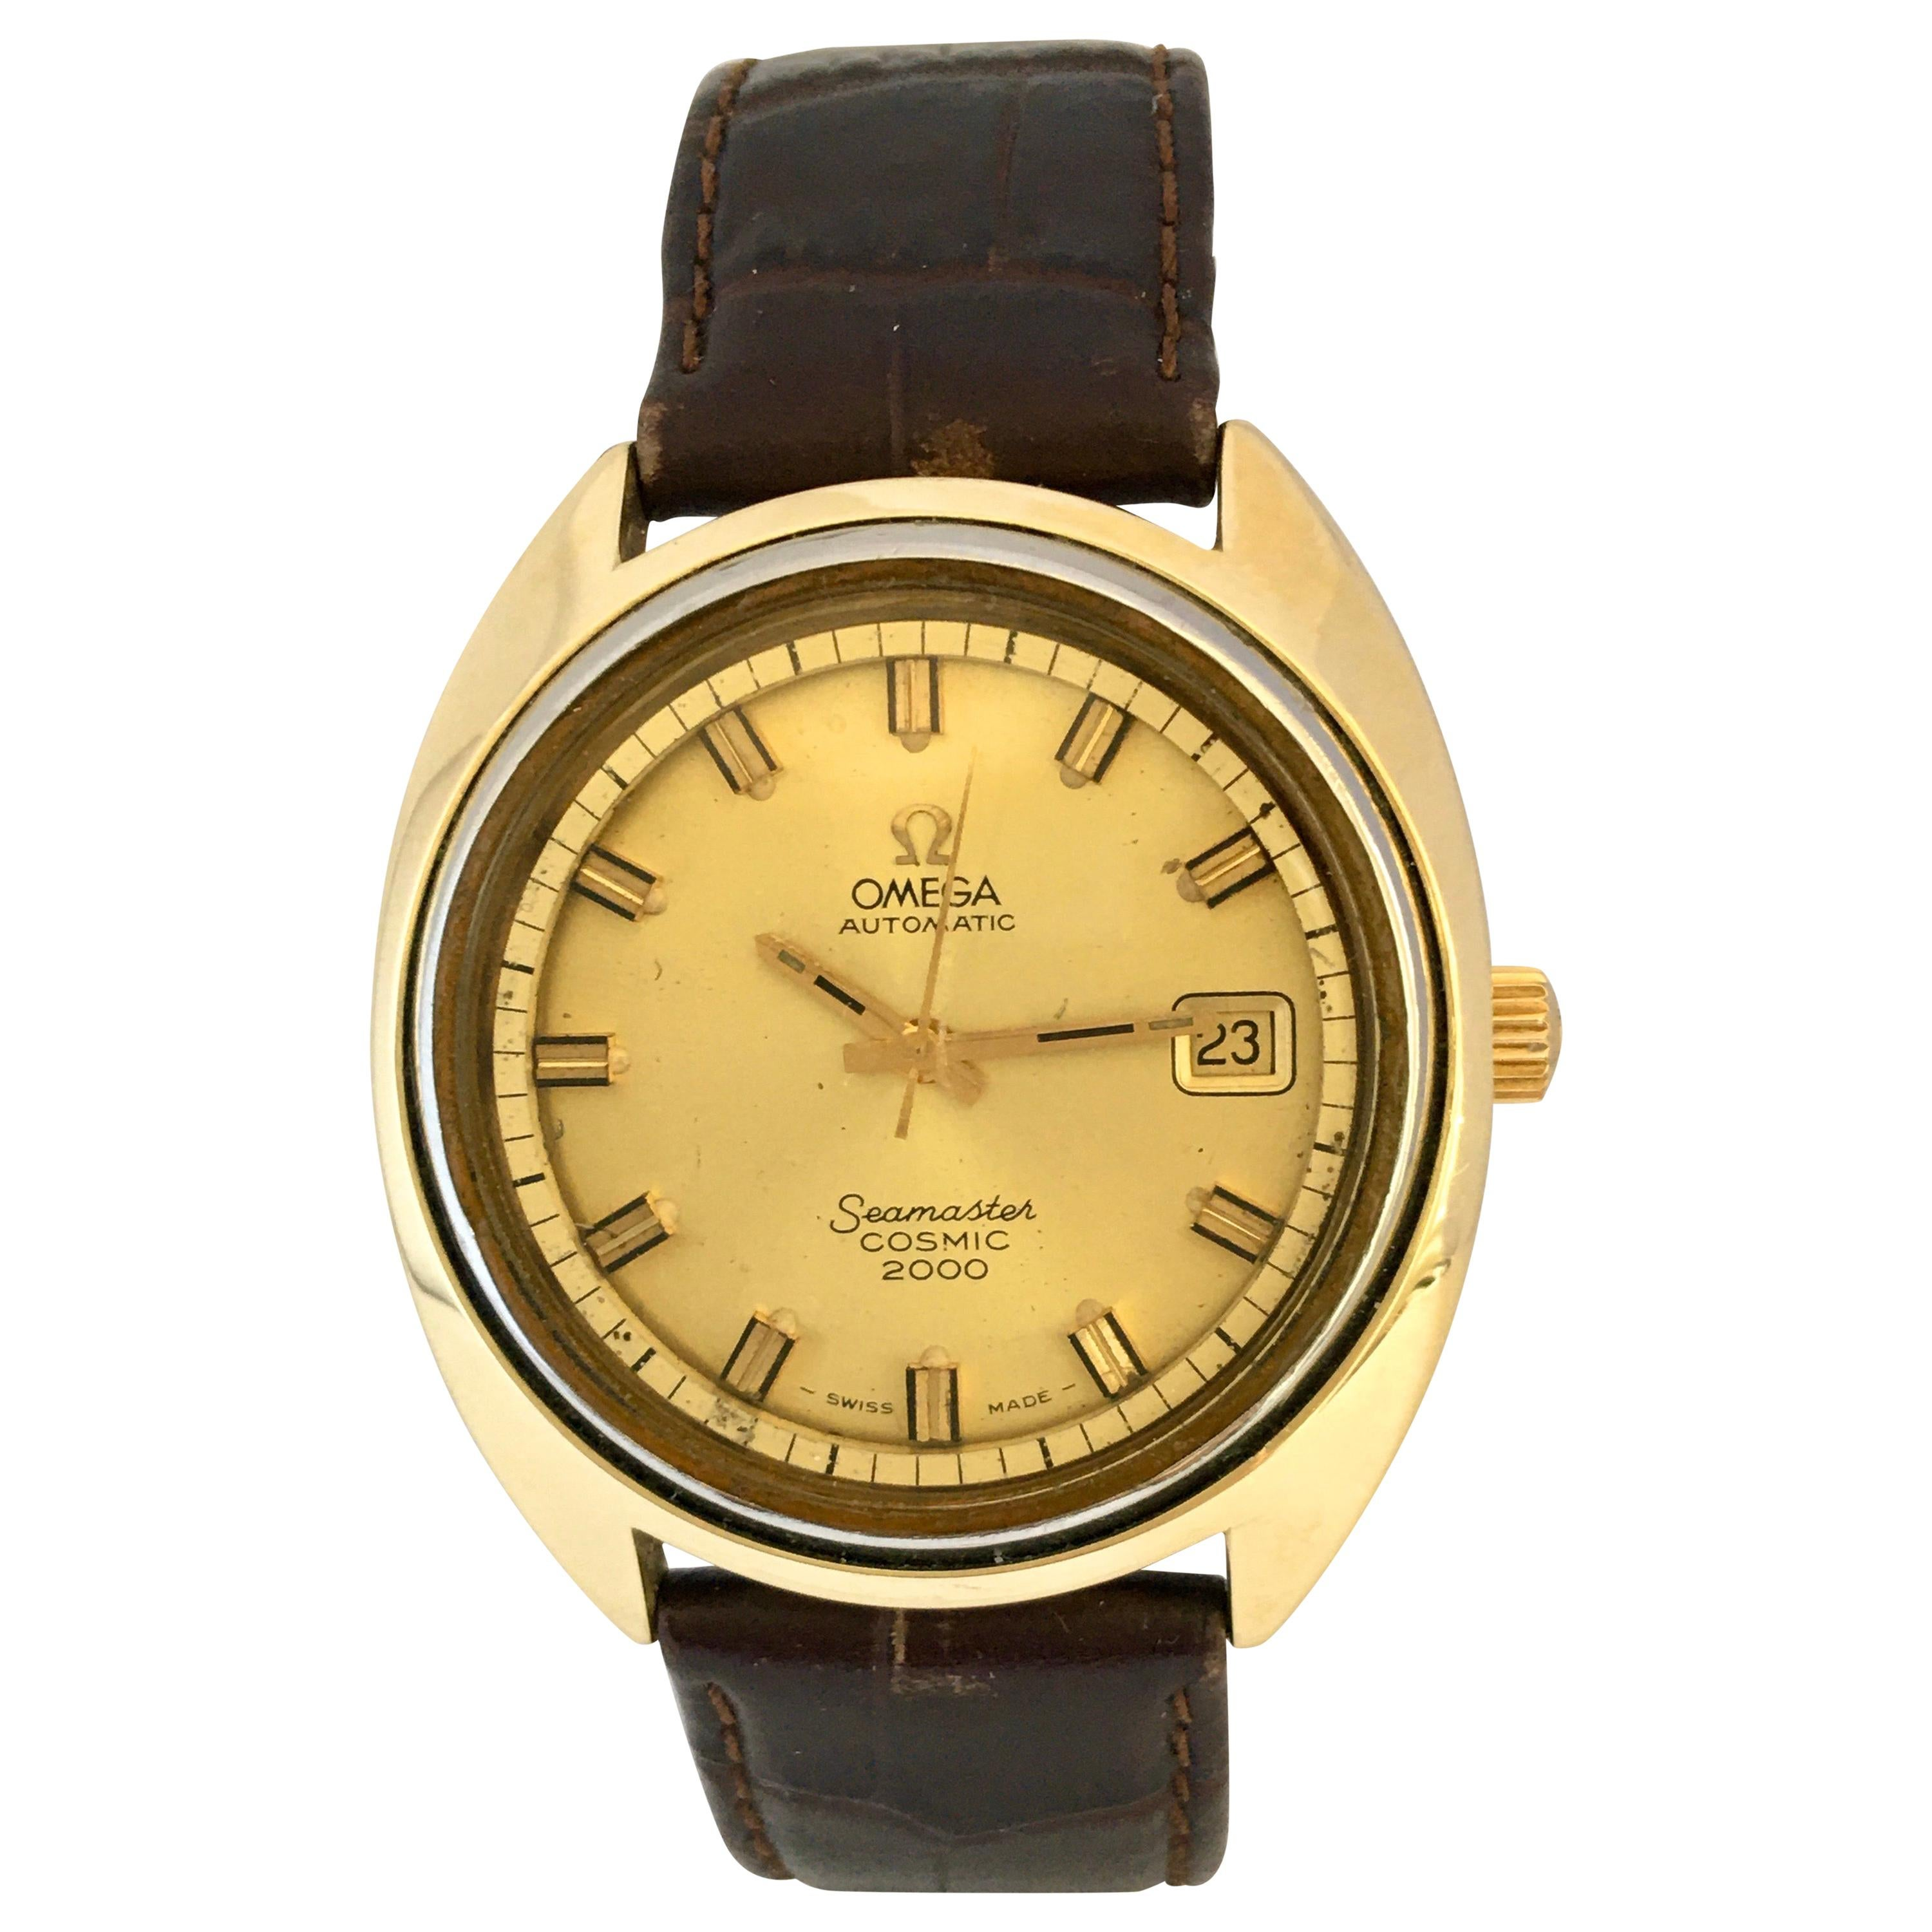 Vintage 1970s Gold-Plated SS Back Omega Automatic Seamaster Cosmic 2000 Watch